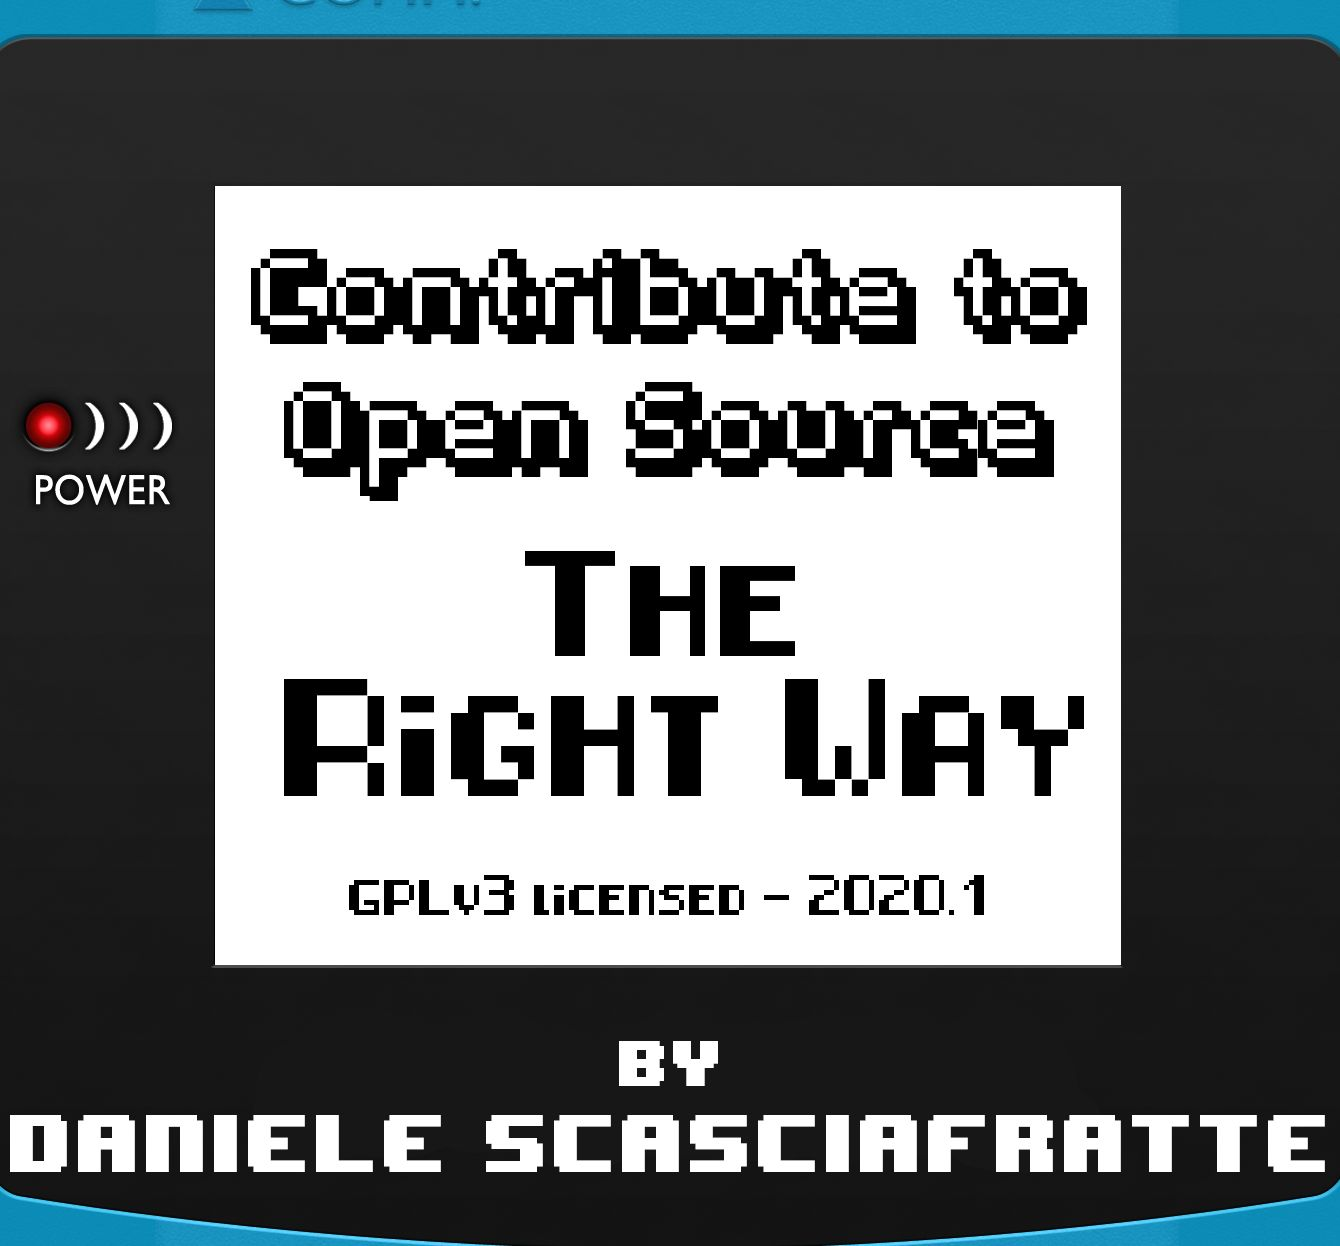 An Open-Source Book About the Open Source World